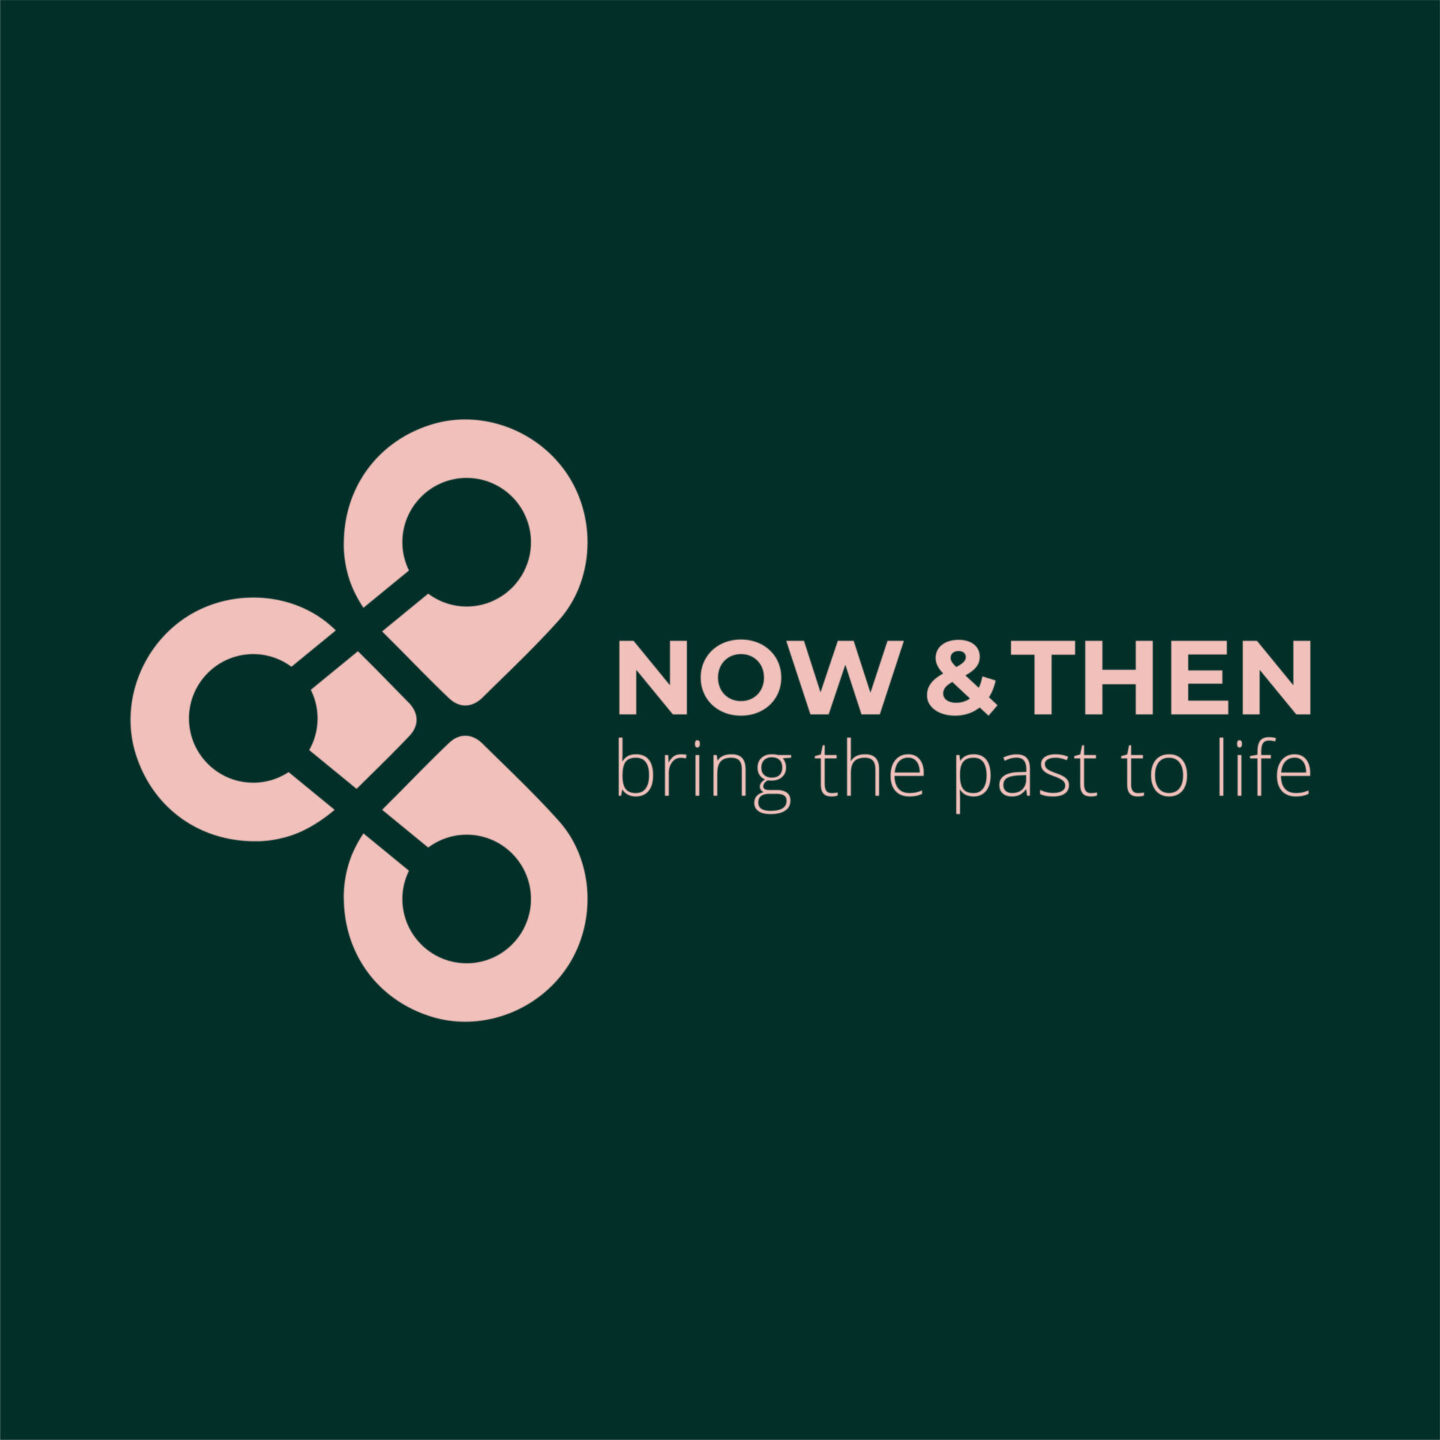 now and then logo design by melissa carne